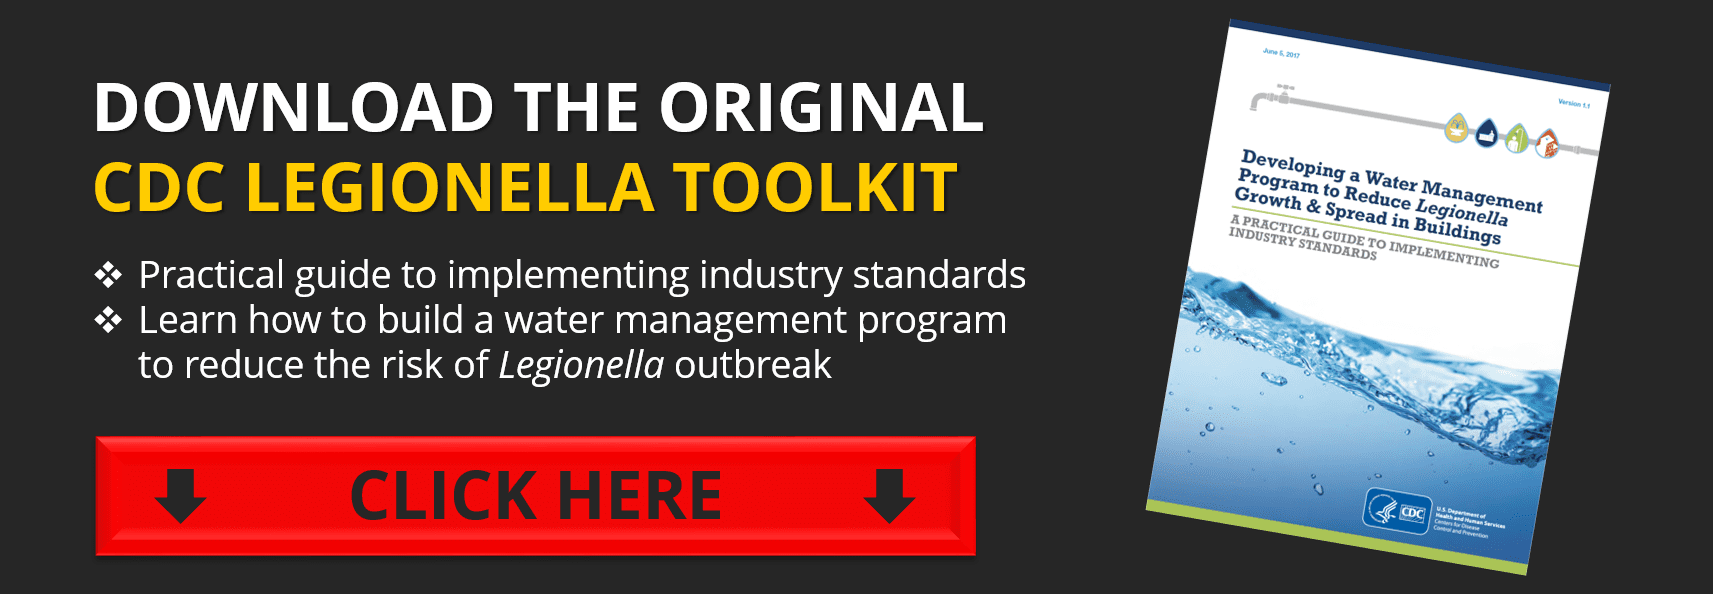 cdc legionella toolkit